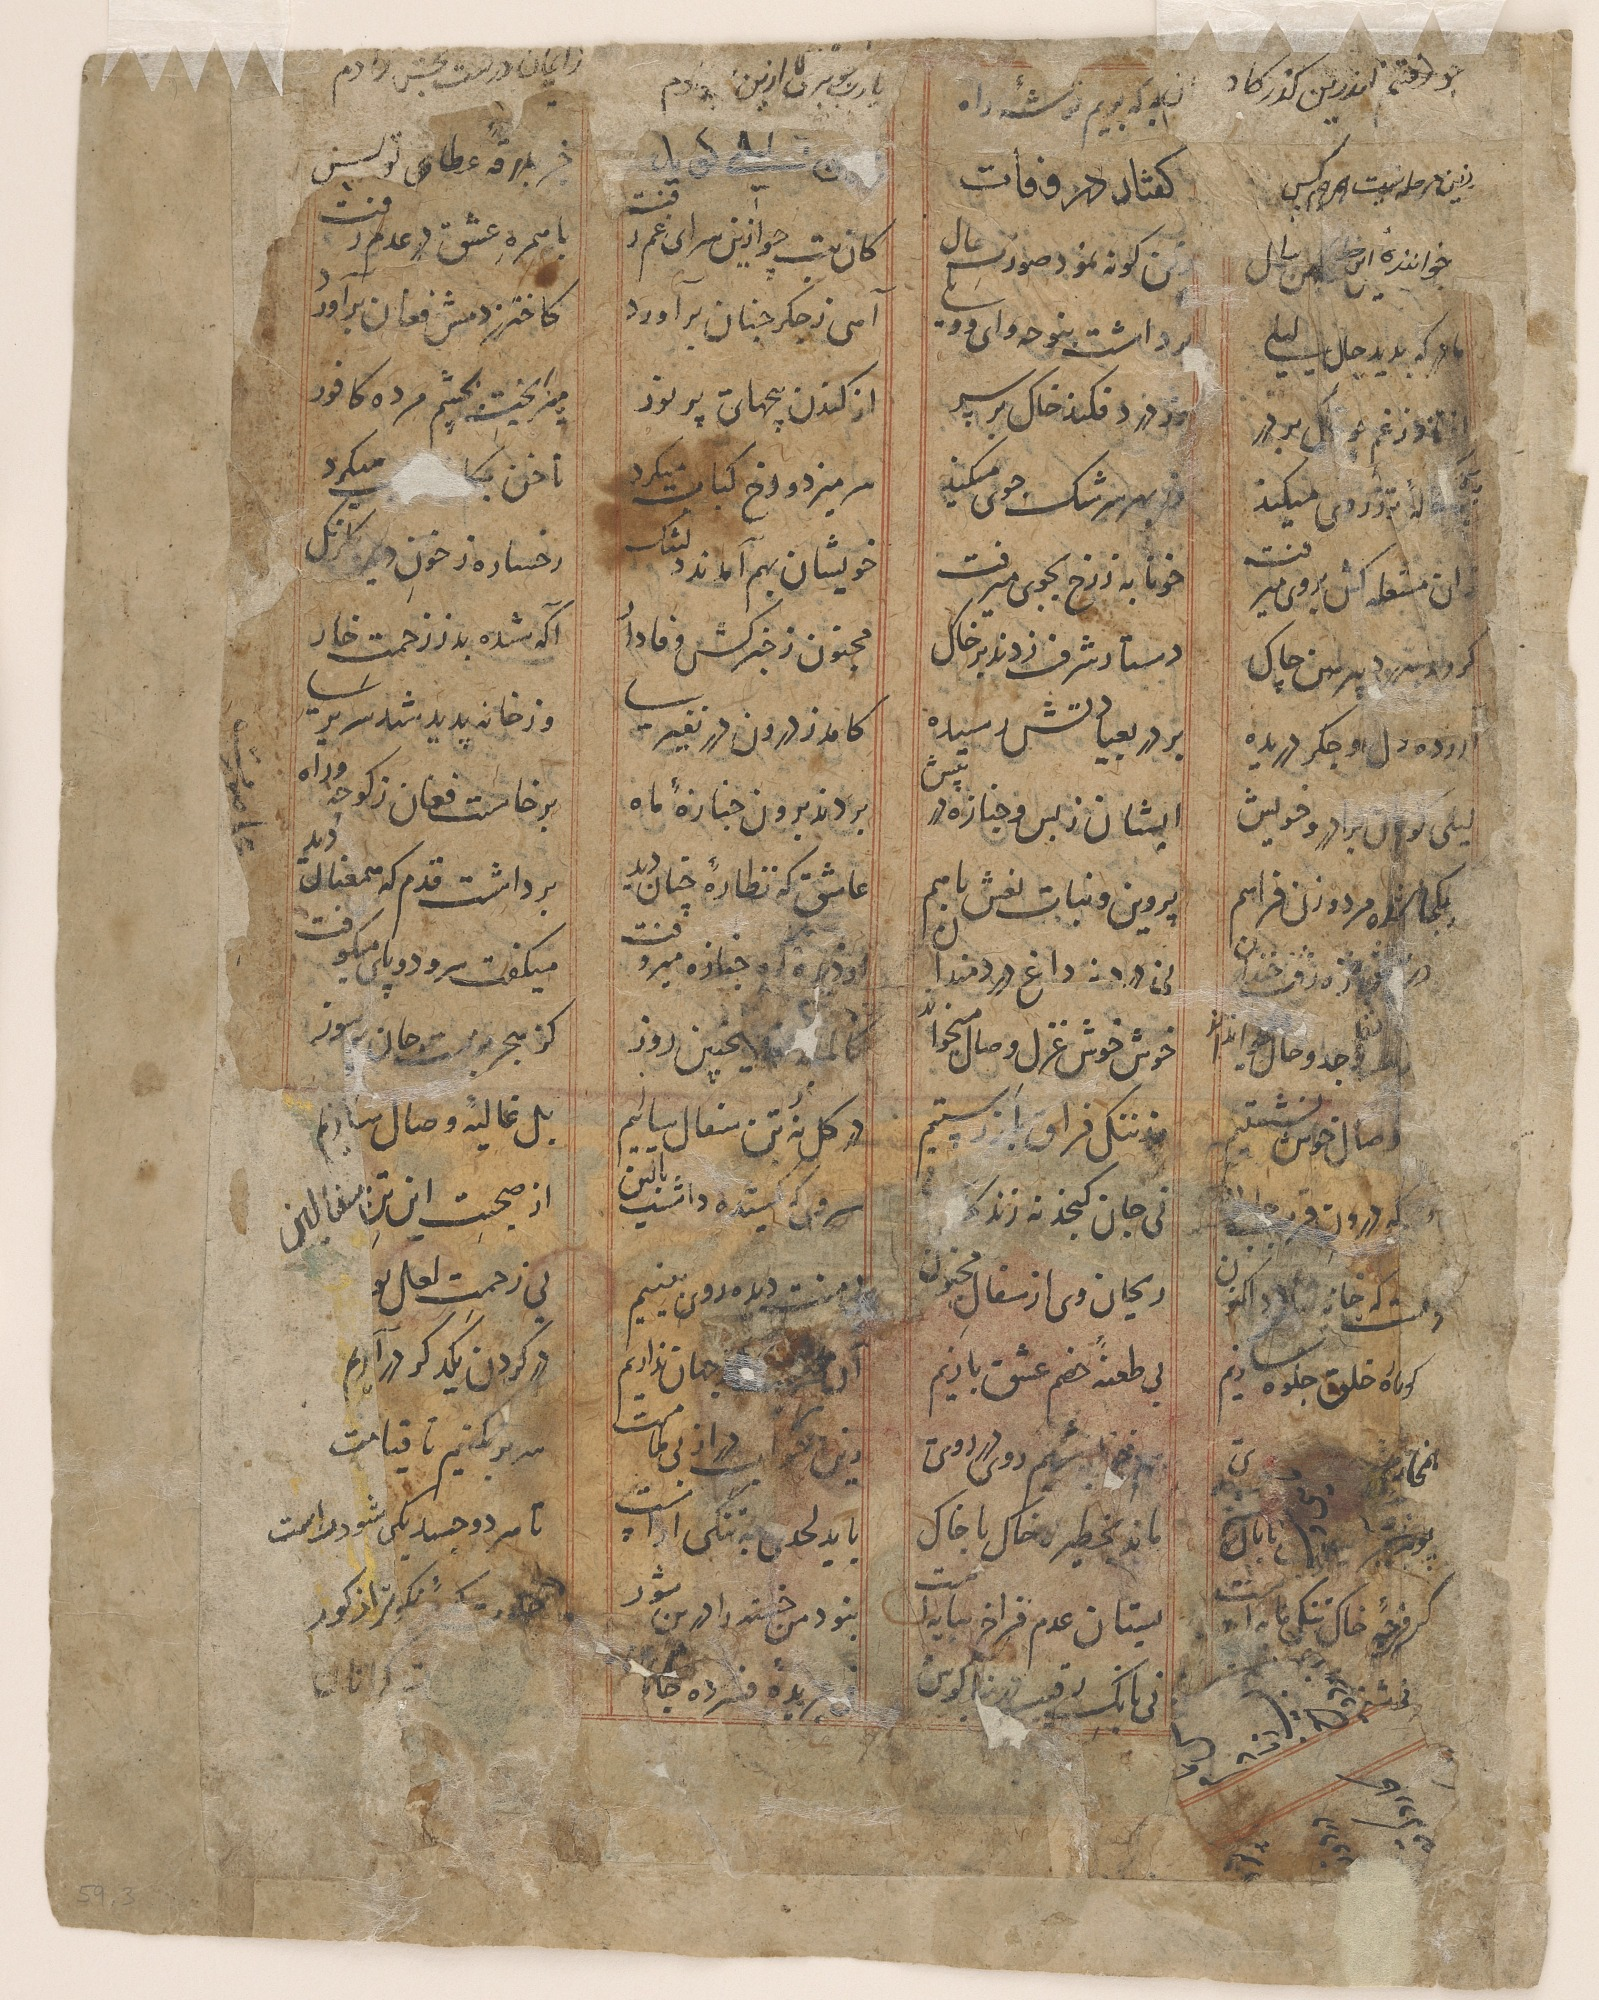 verso: Majnun throwing himself onto Layla's grave, folio from a Khamsa (Quintet) of Amir Khusraw Dihlavi